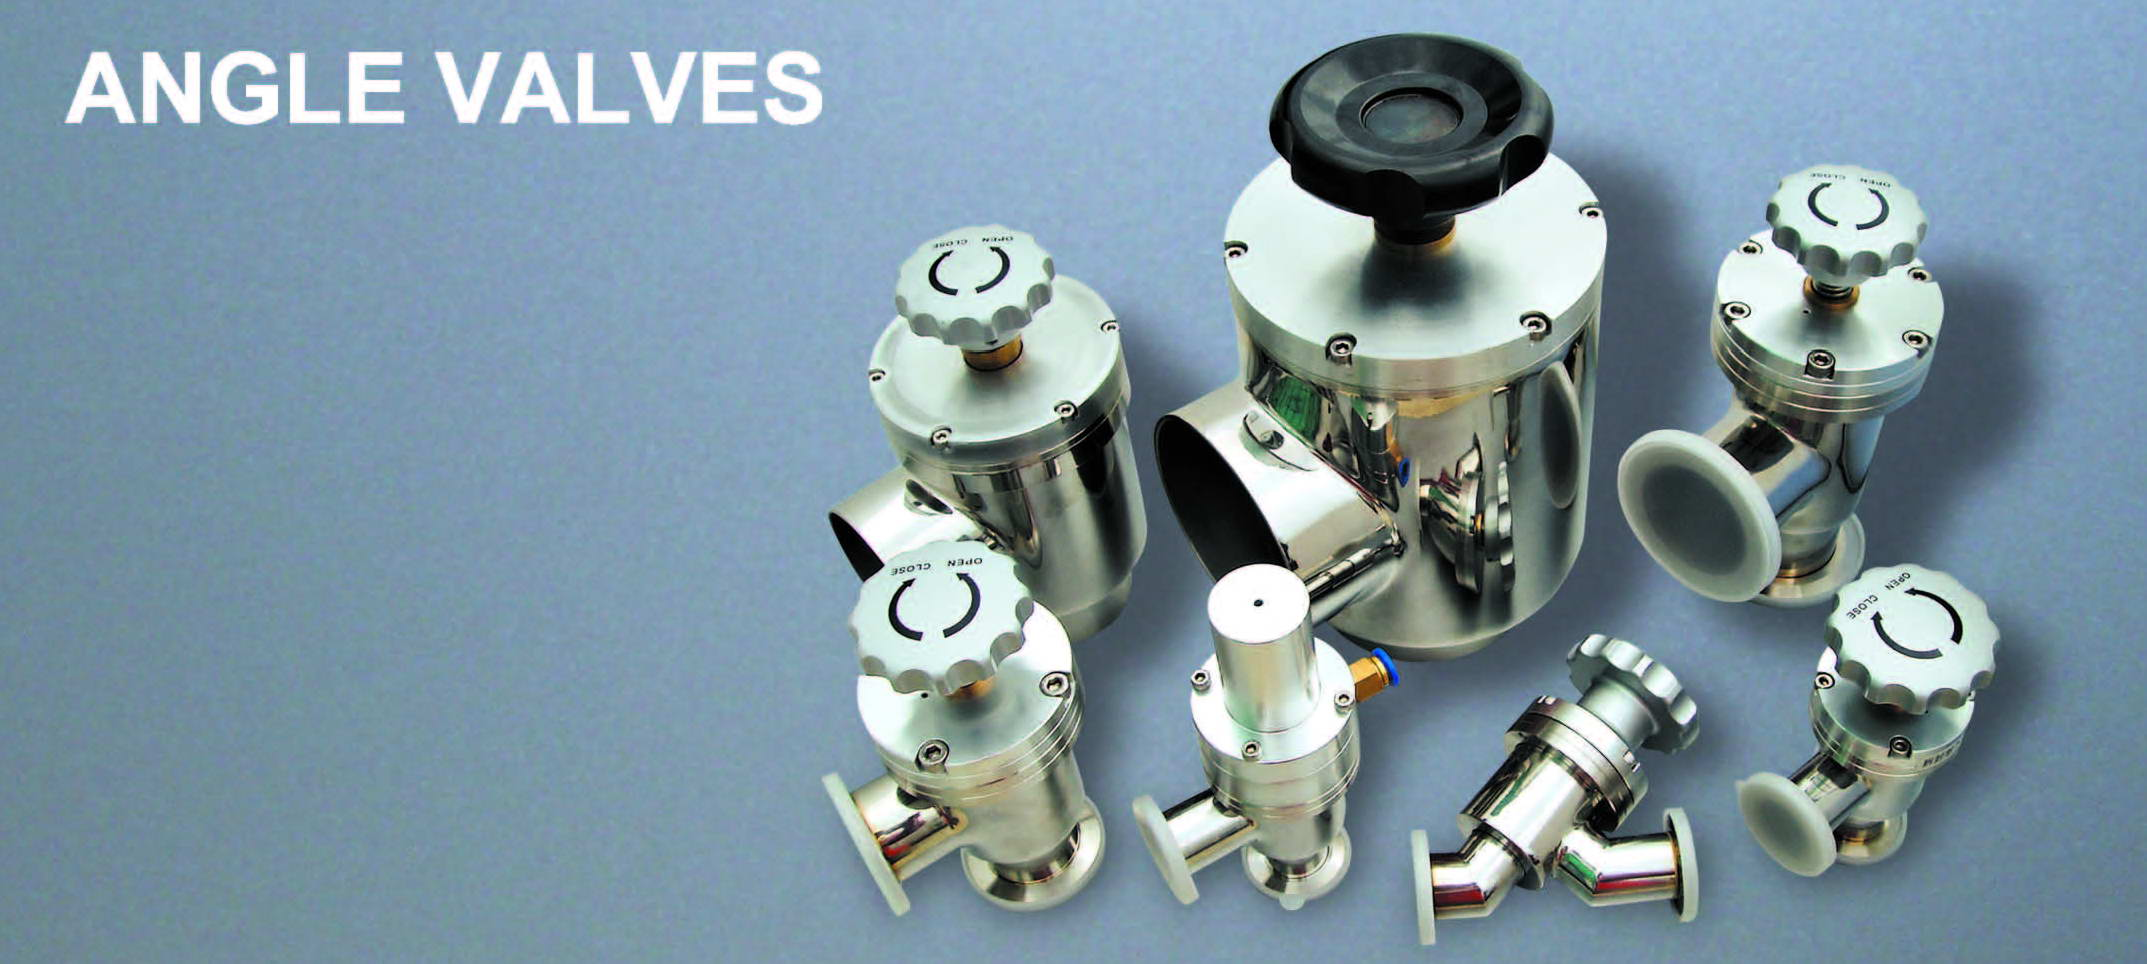 Ultra High Vacuum Valves / UHV Valves / High Vacuum Valves